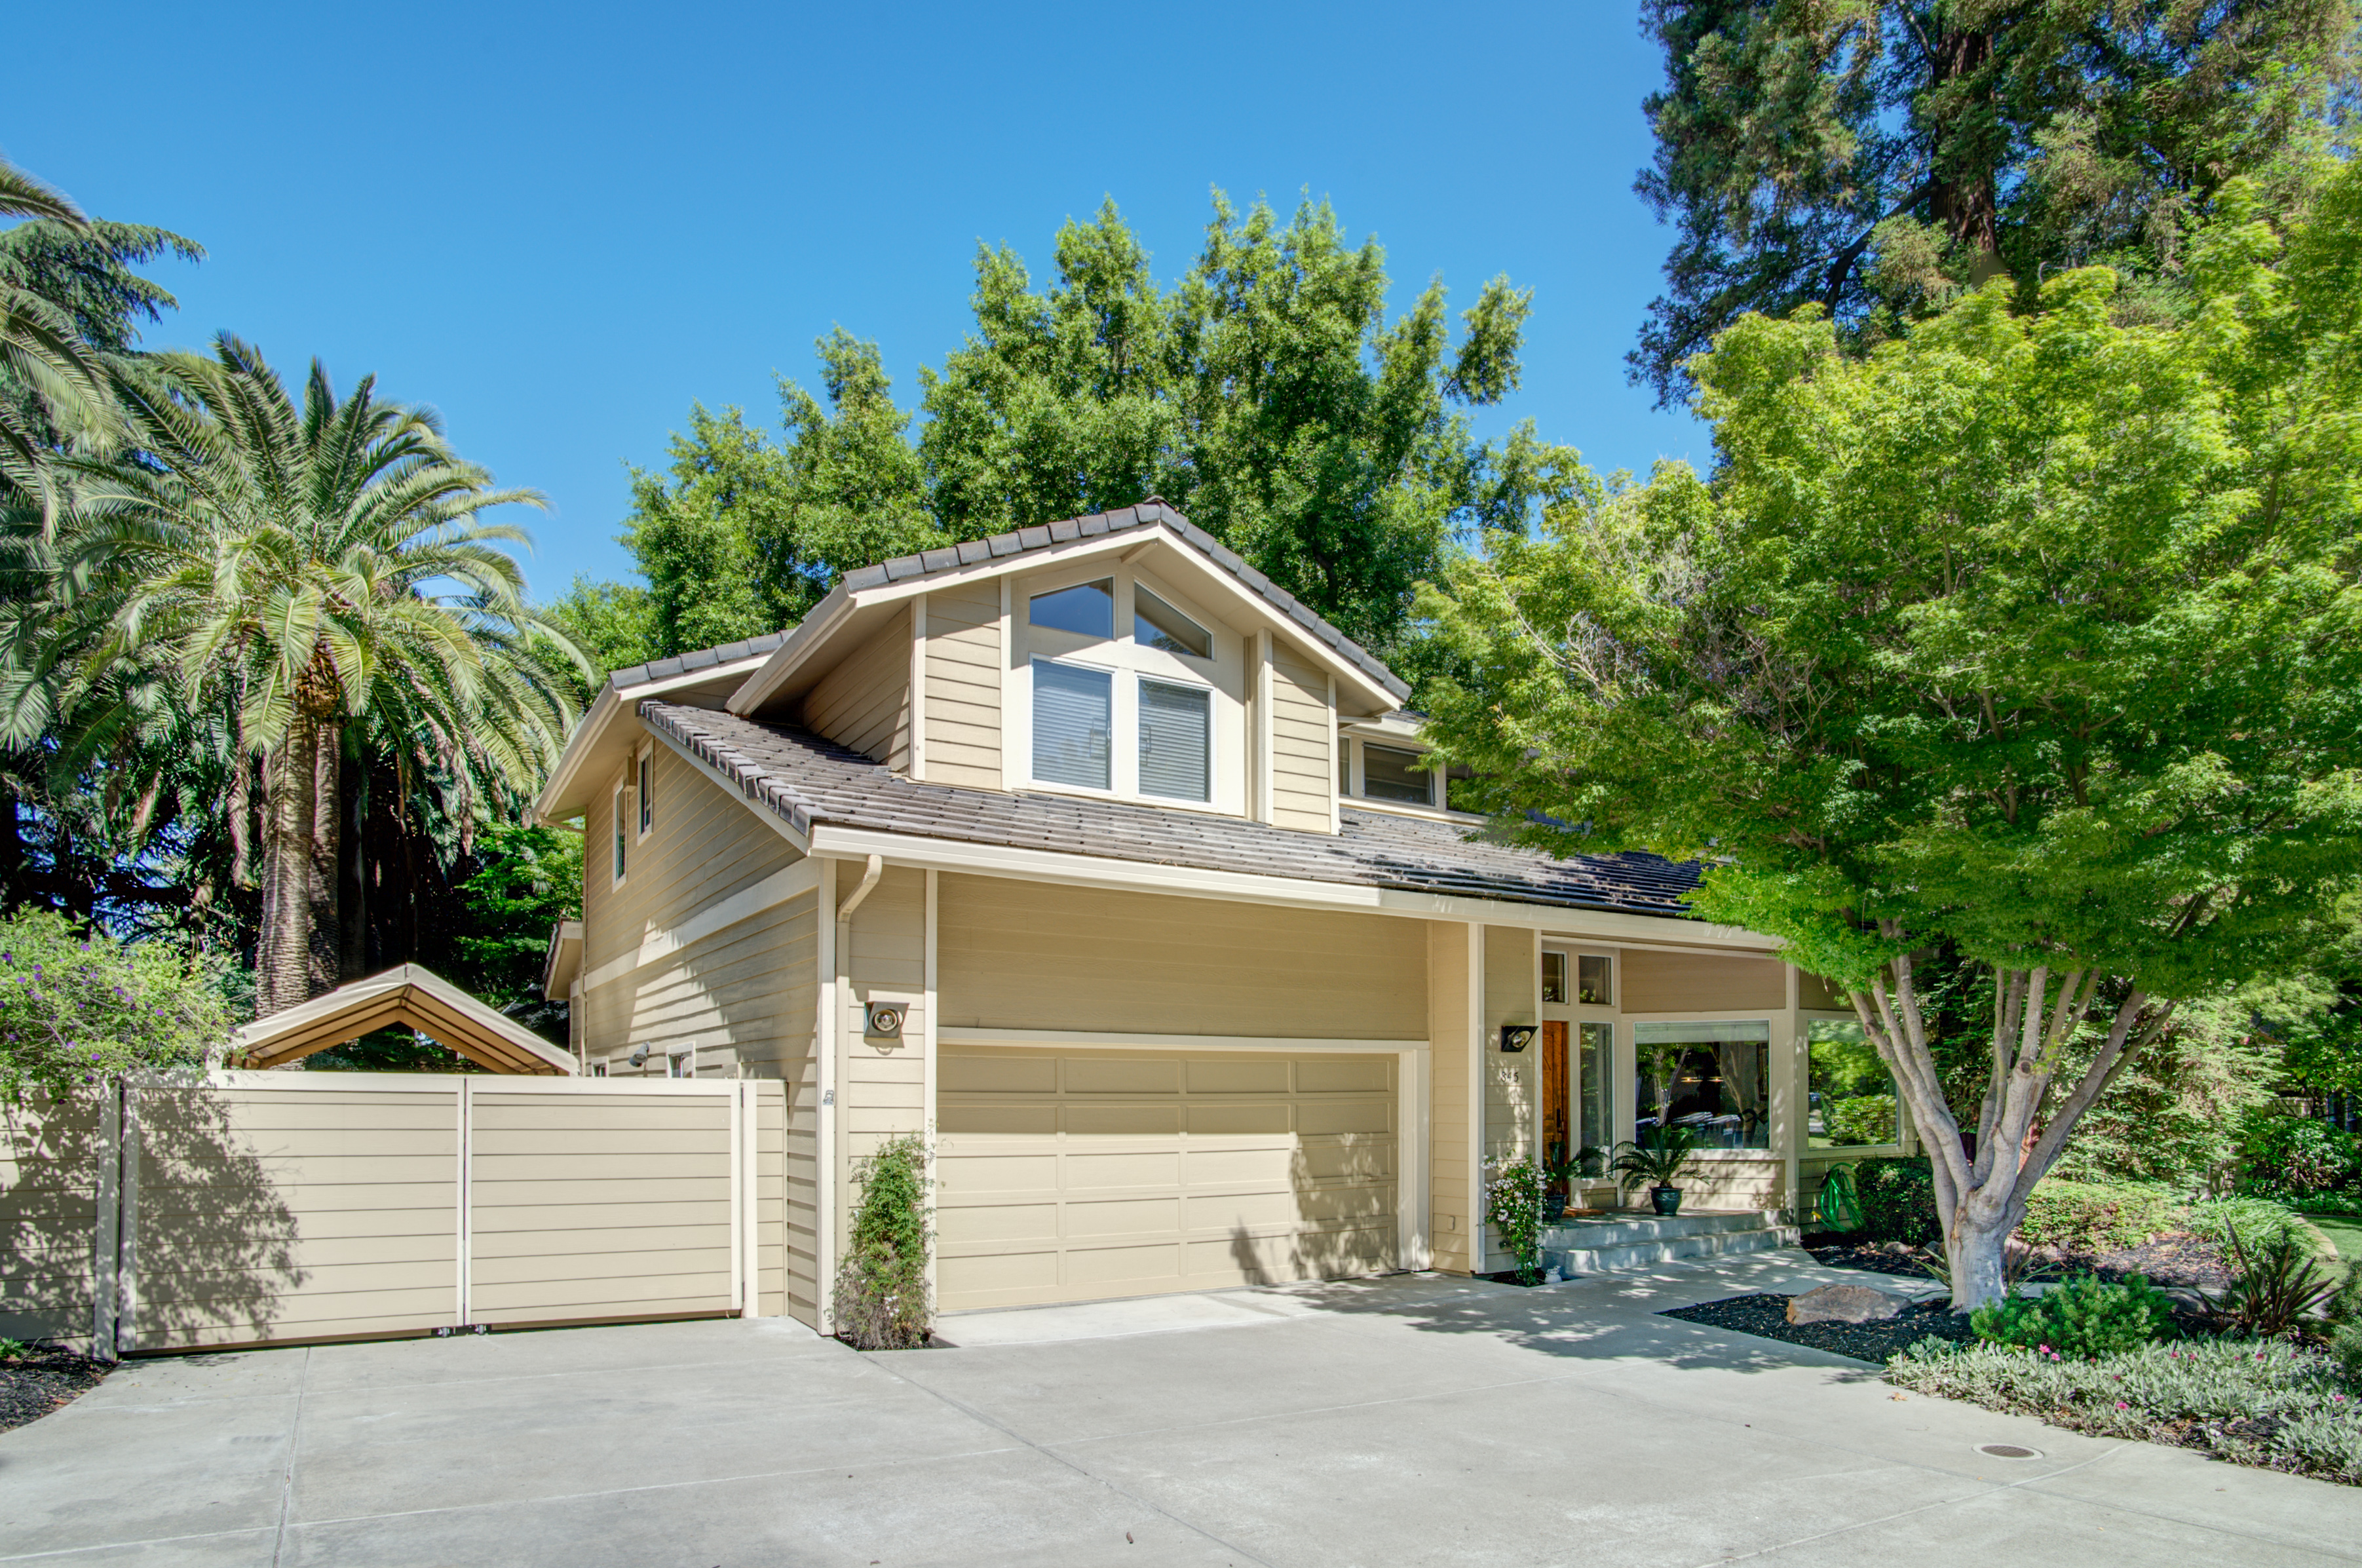 845_Kingsbury_Dr_Livermore-001